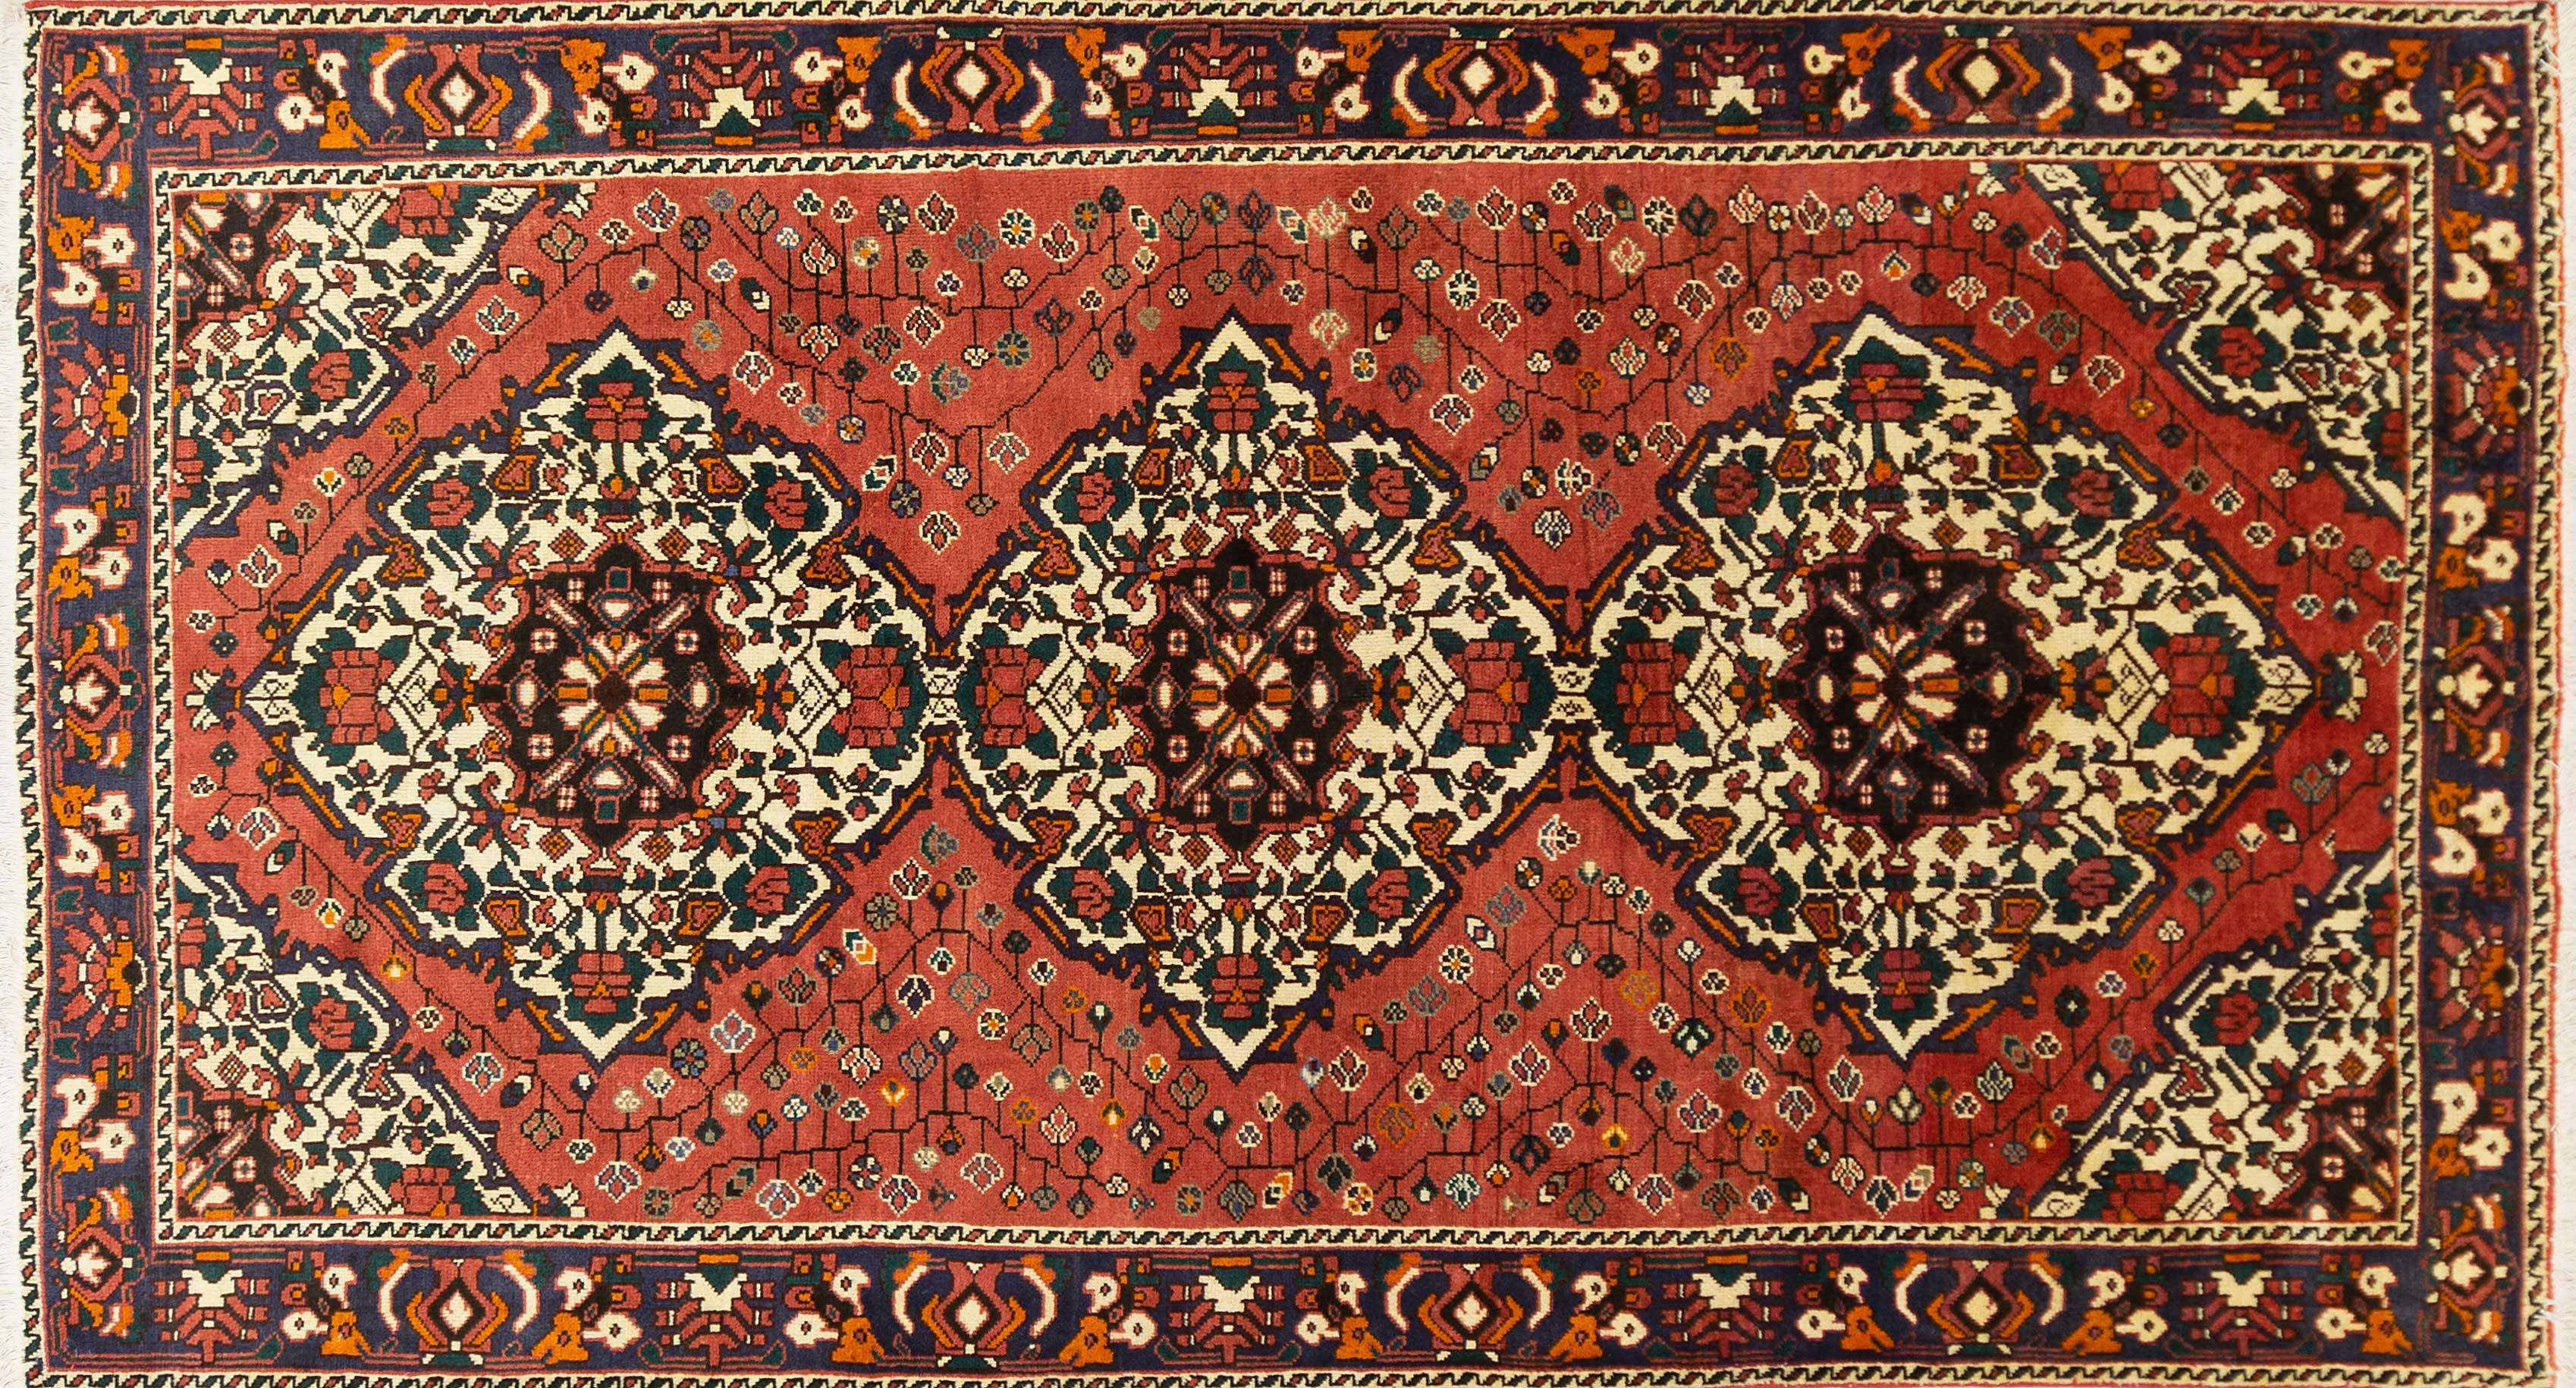 A Persian Hand Knotted Bakhtiari Rug, 301 x 165